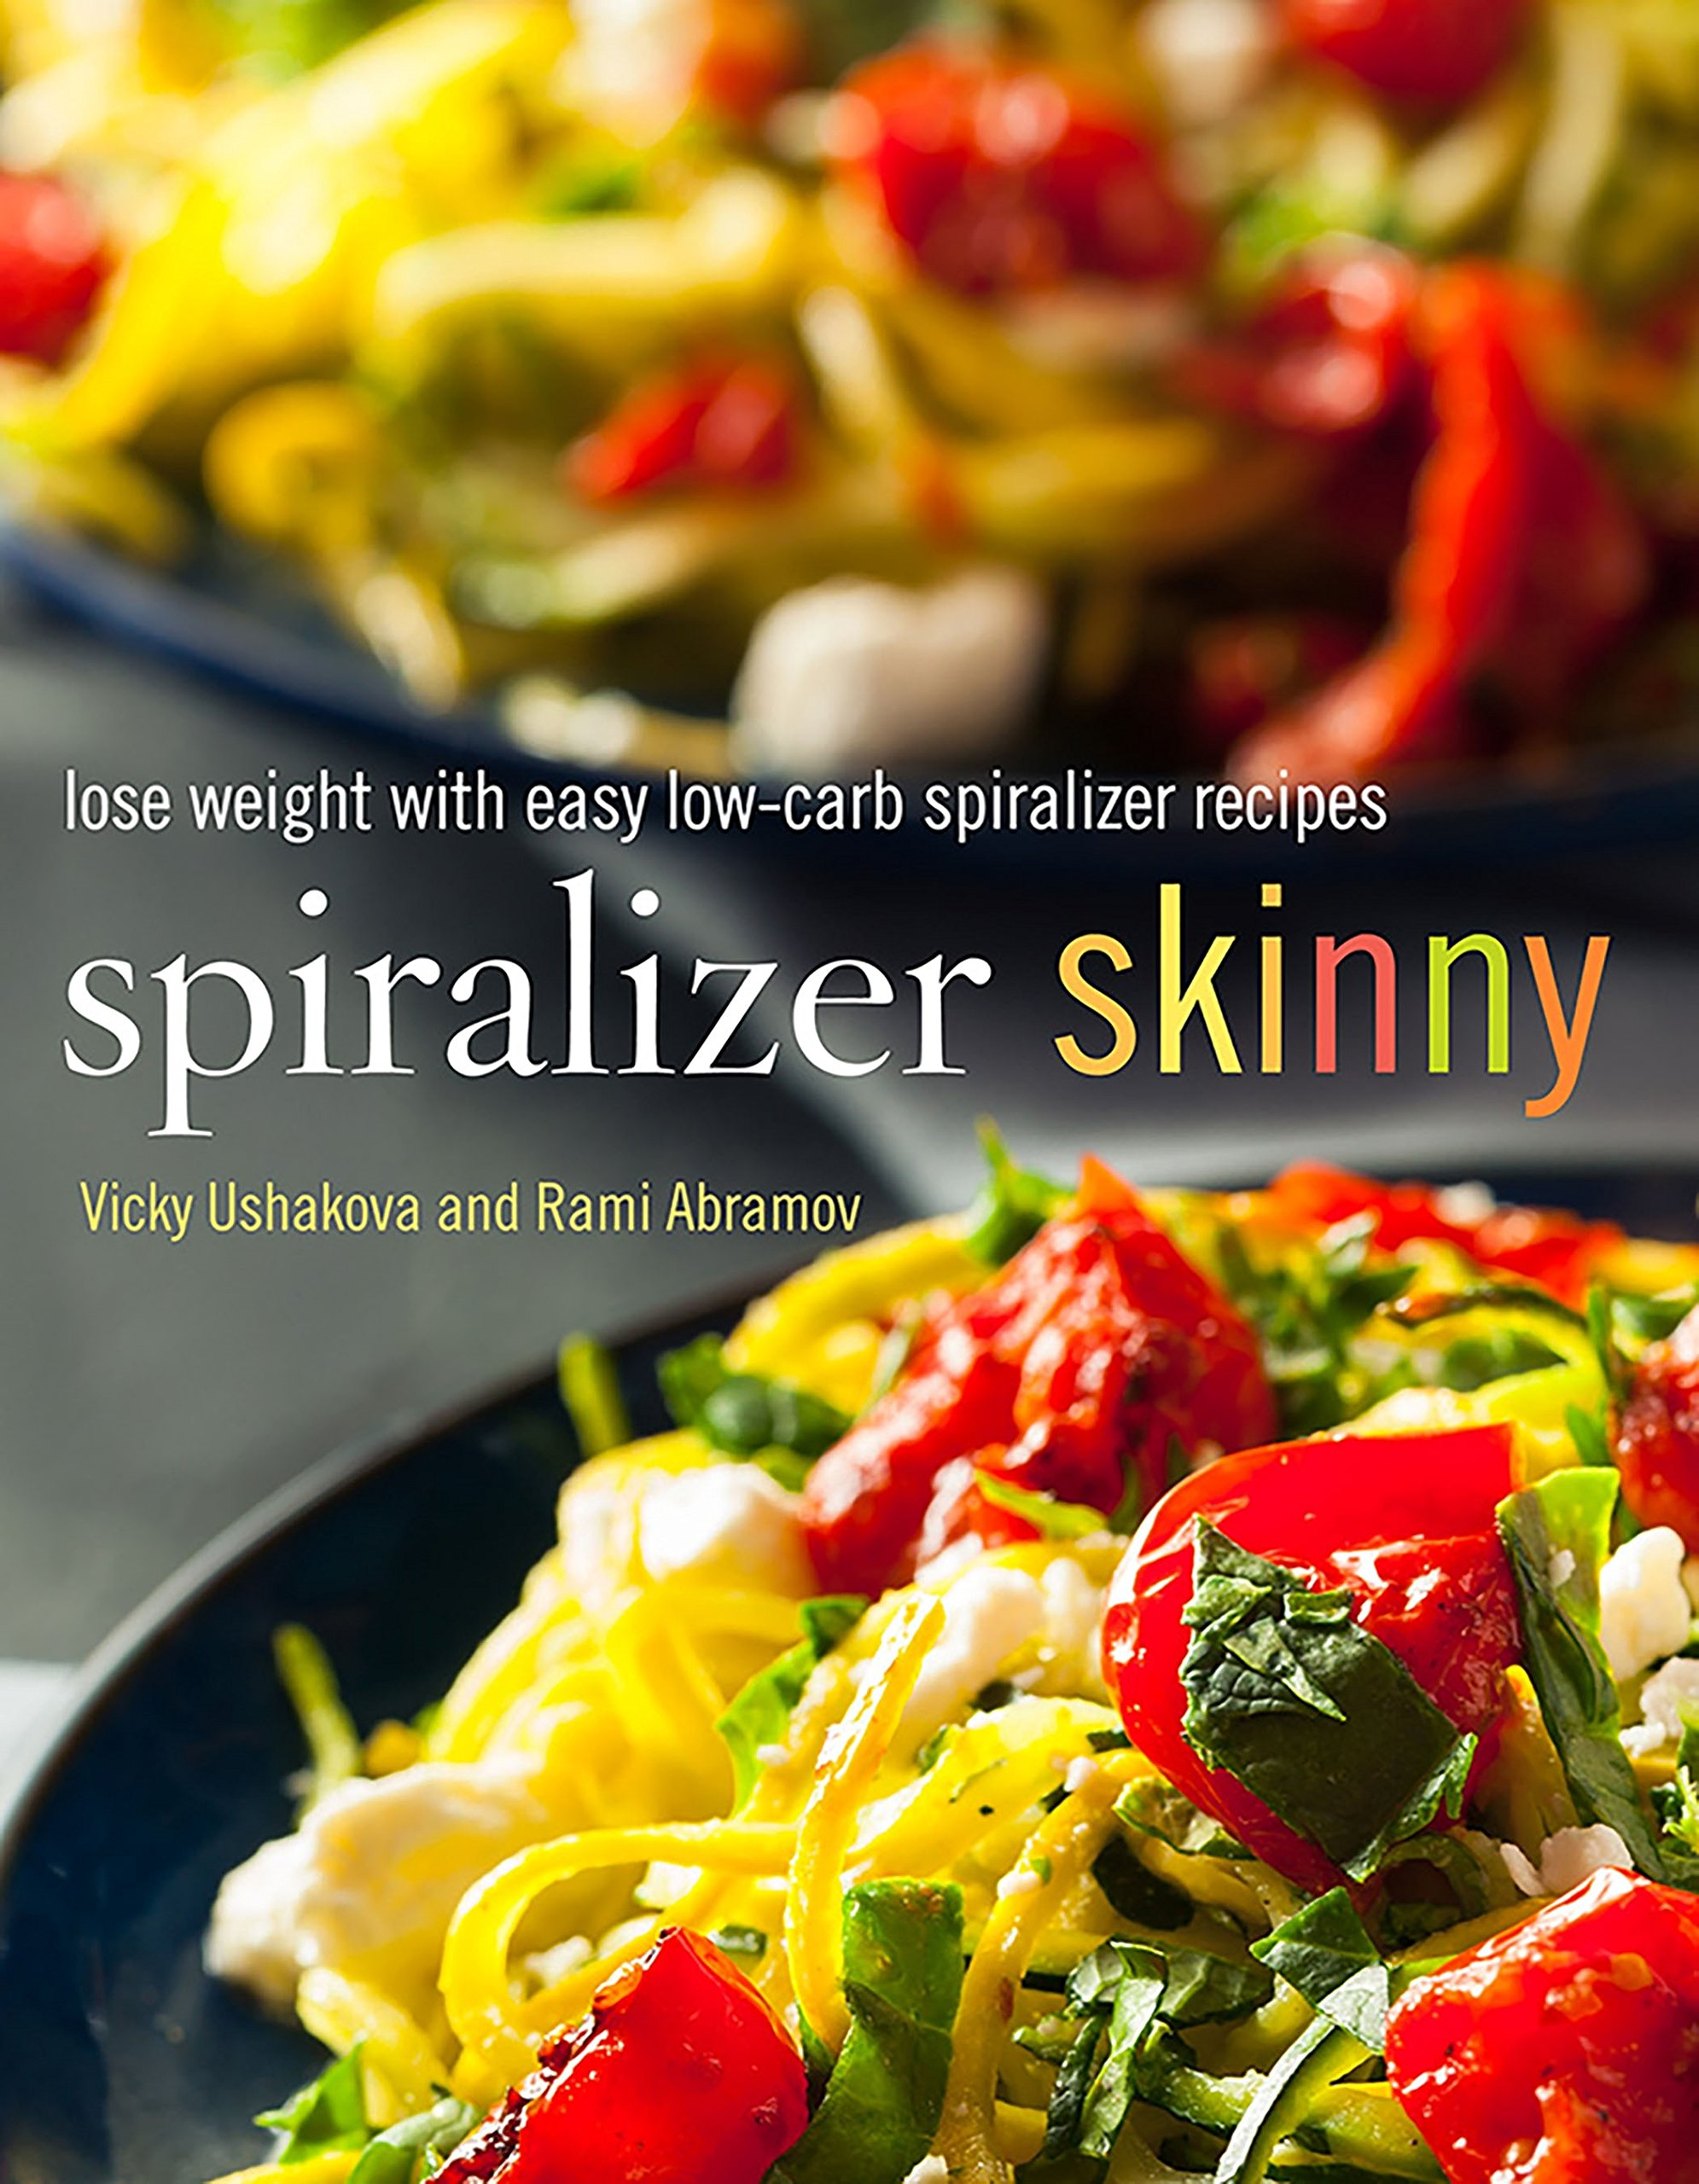 Spiralizer Skinny: Lose Weight with Easy Low-Carb Spiralizer Recipes